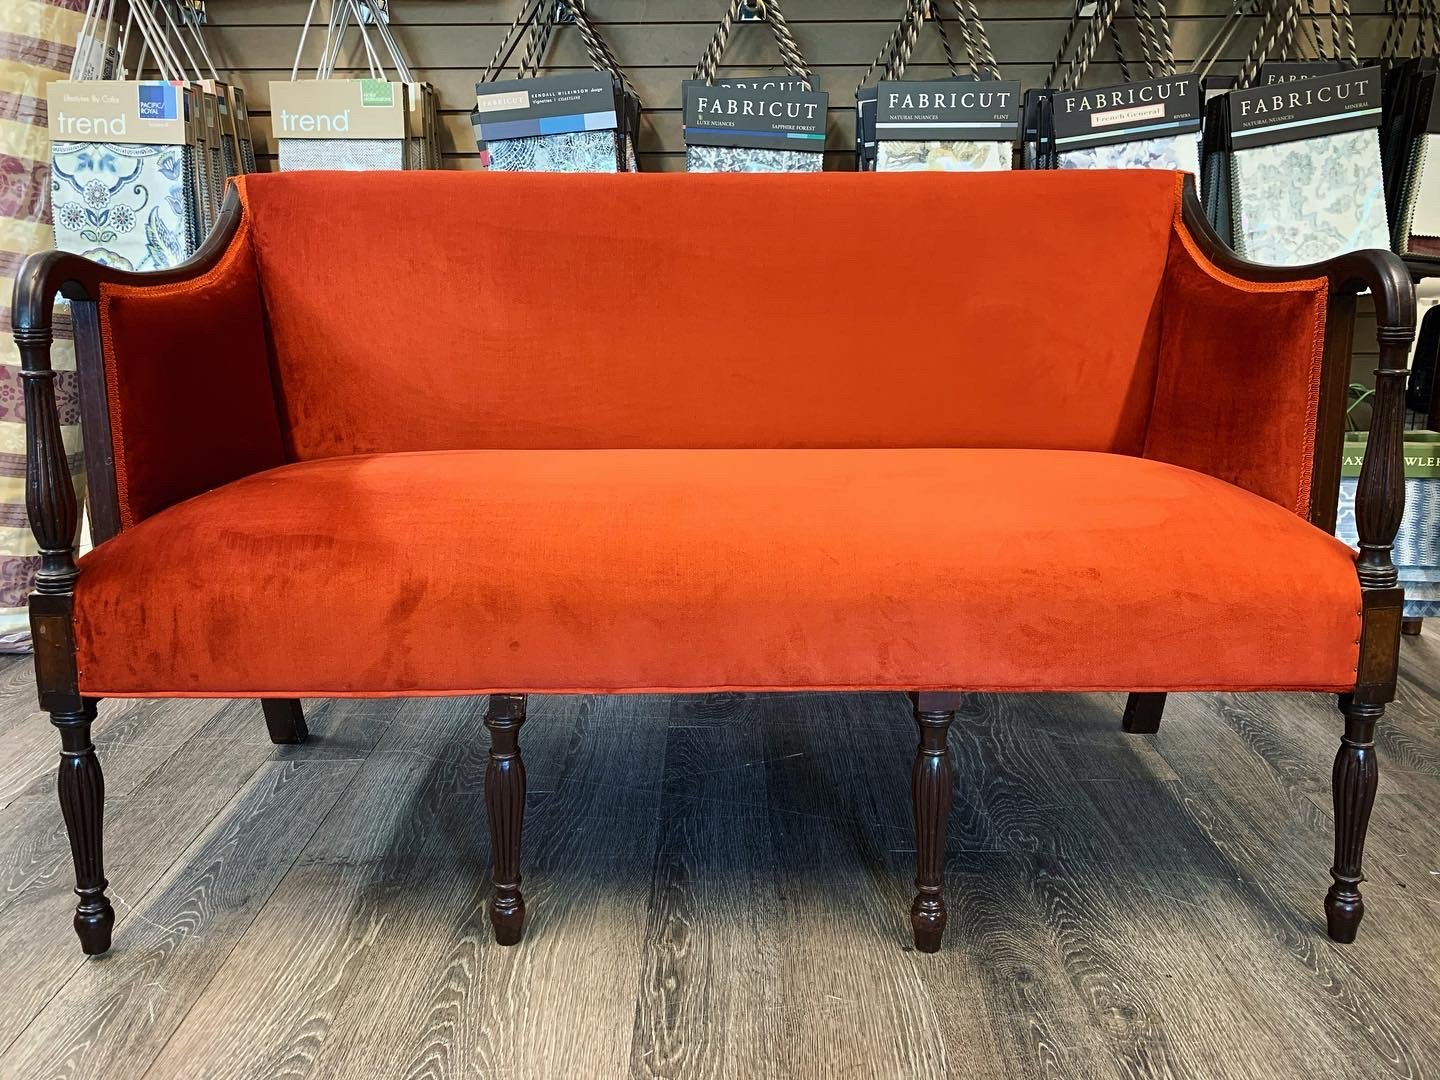 settee orange upholstery antique